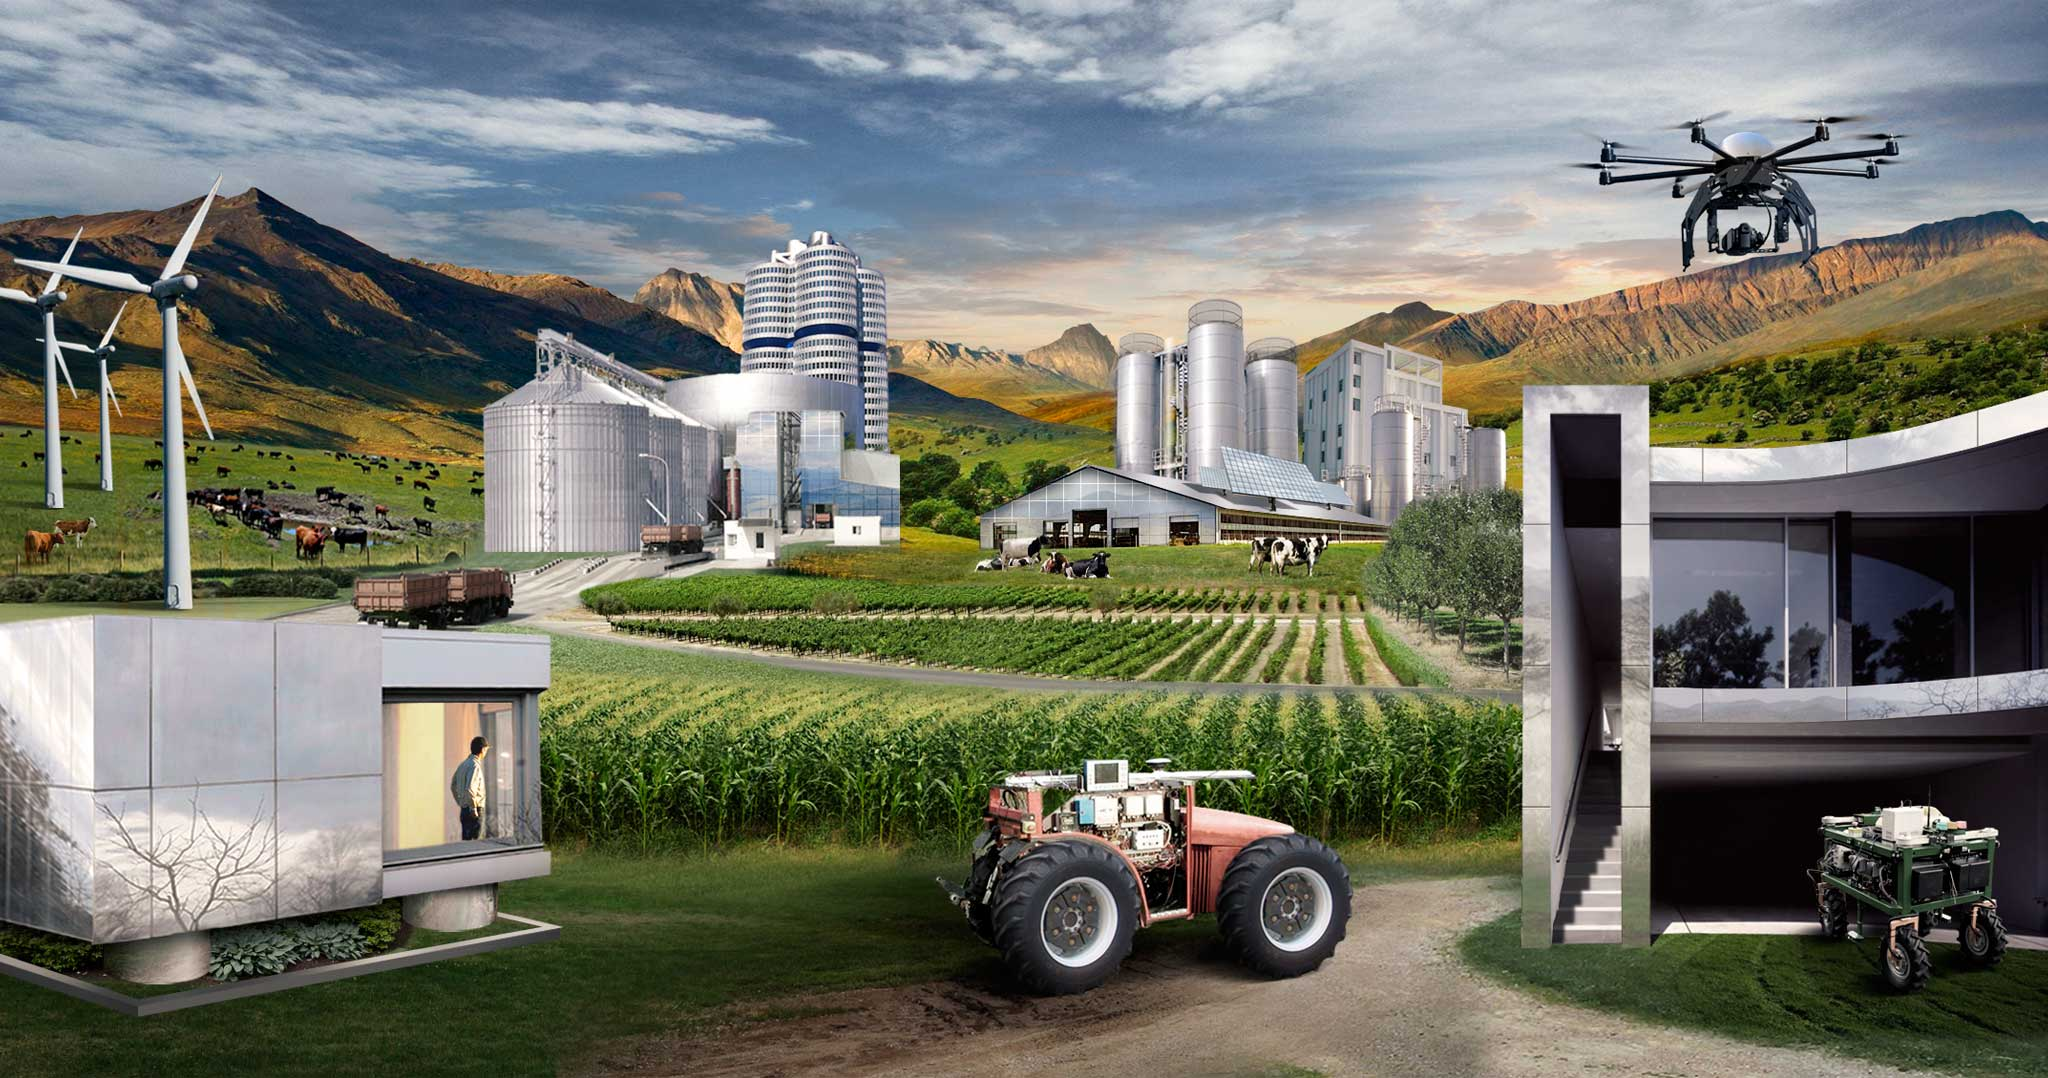 drones and farming with Hamfarms Blogs on Agriculture Technology Drones additionally Data Driven Farming With Agricultural Drones moreover Drones And New Applications For Precision Agriculture additionally Agtech Branding furthermore Case Study Drone Precision Farming.